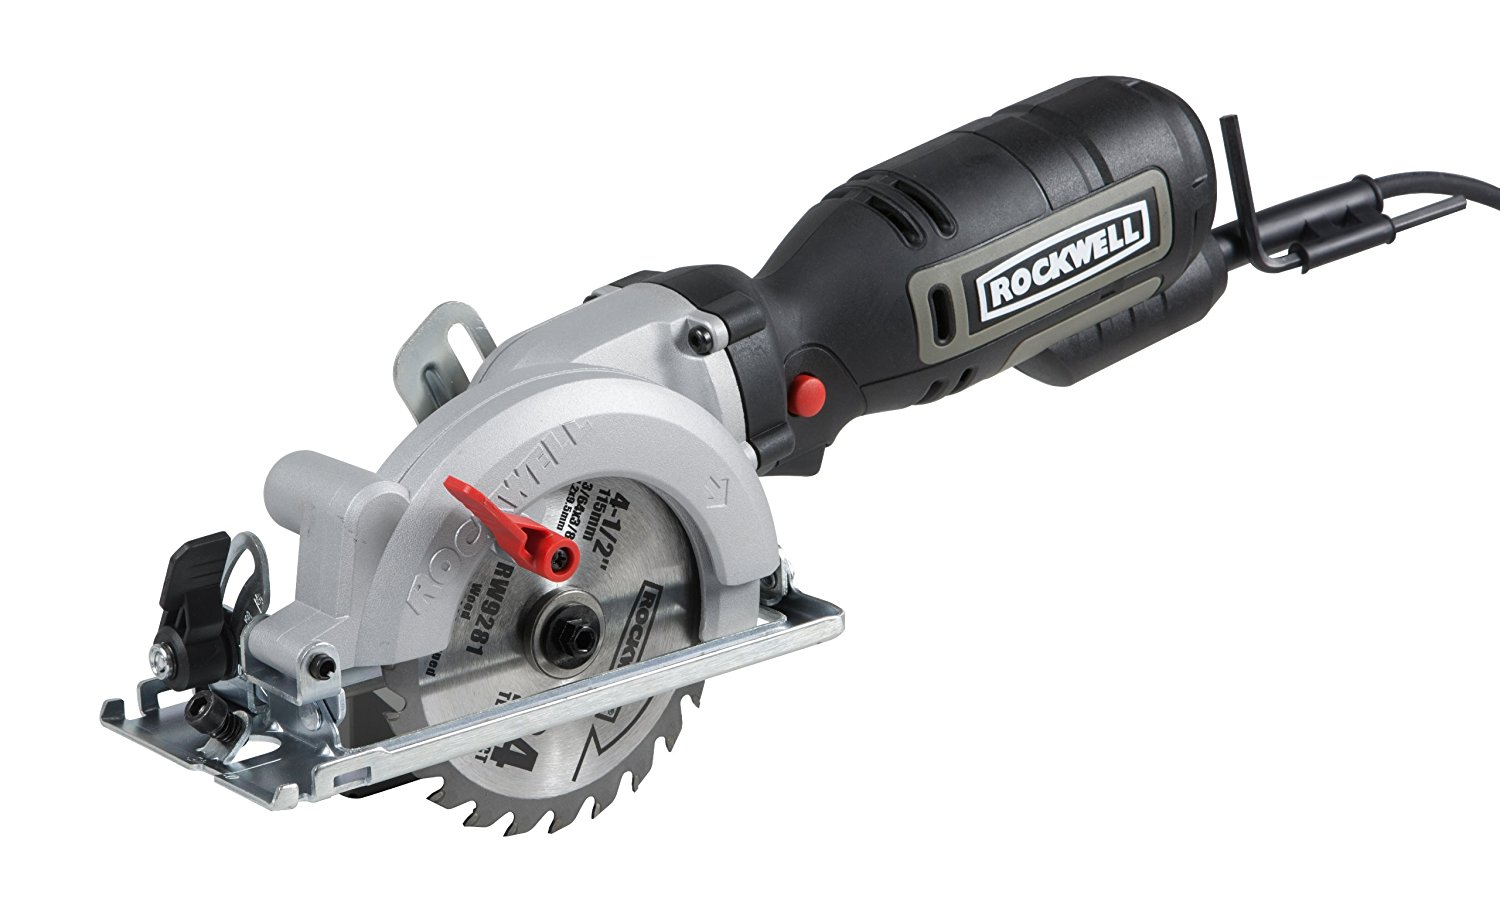 Porter cable pce381k 4 12 inch compact circular saw is it a porter cable pce381k 4 12 inch compact circular saw is it a rockwell rk3441k in disguise keyboard keysfo Image collections